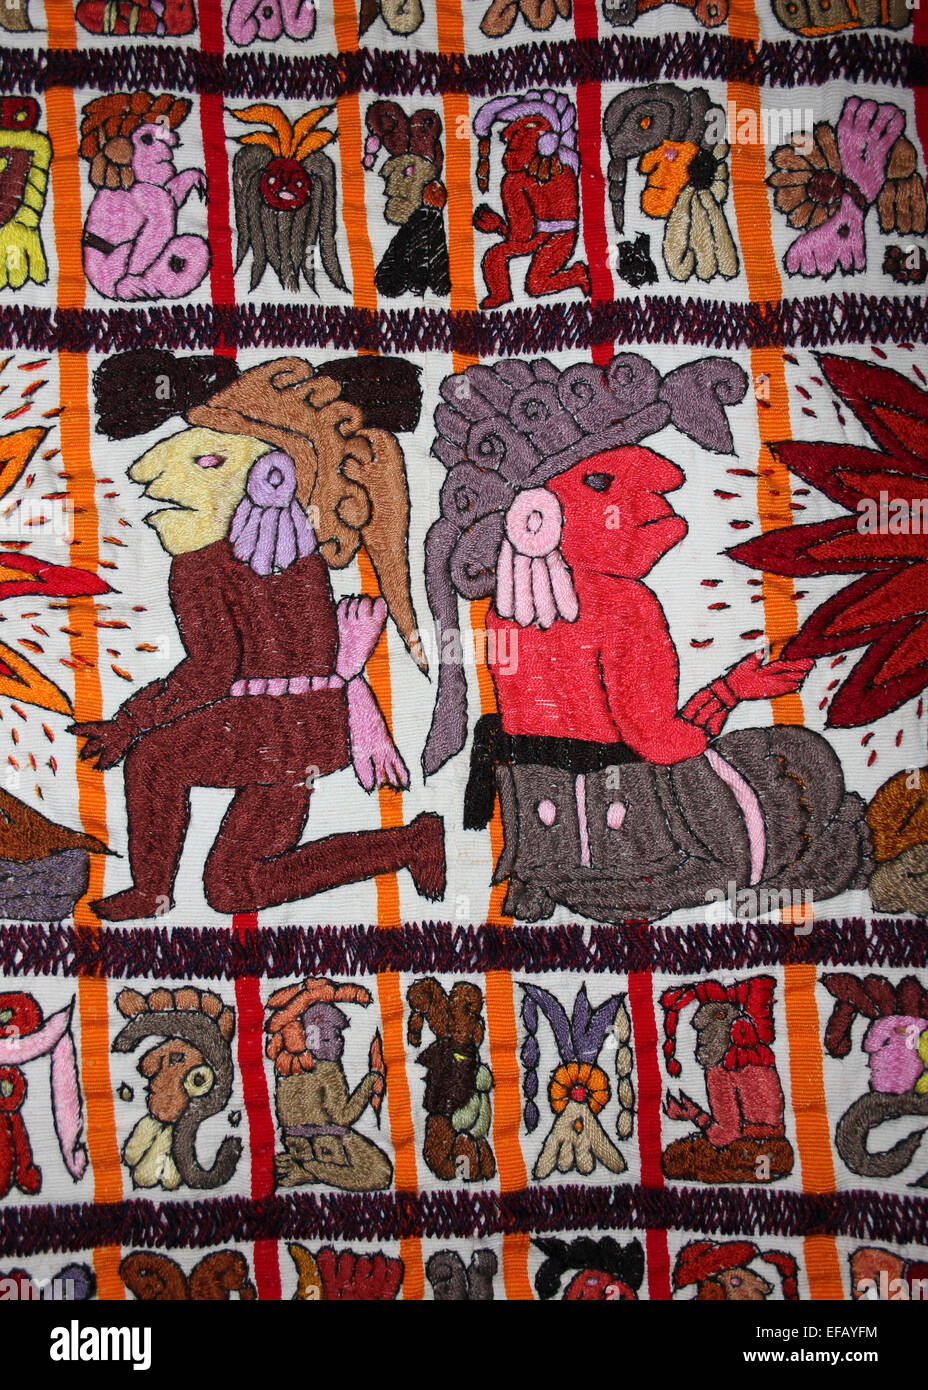 Modern Guatemalan Cloth Embroidered With Mayan Gods and Glyphs - Stock Image